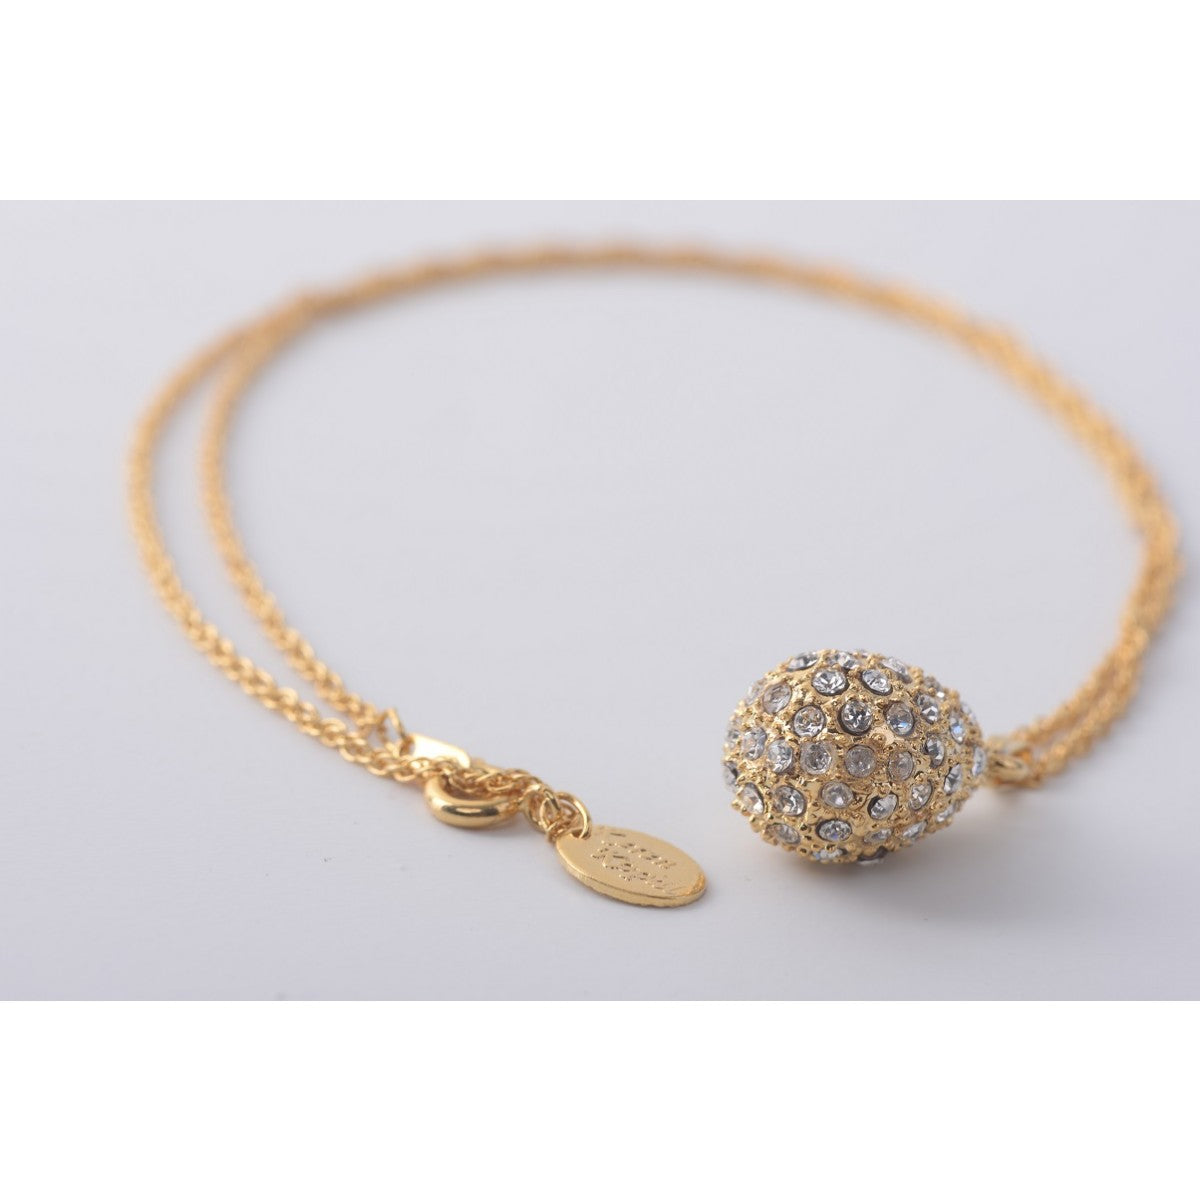 Gold with crystals  Faberge Egg Pendant Necklace